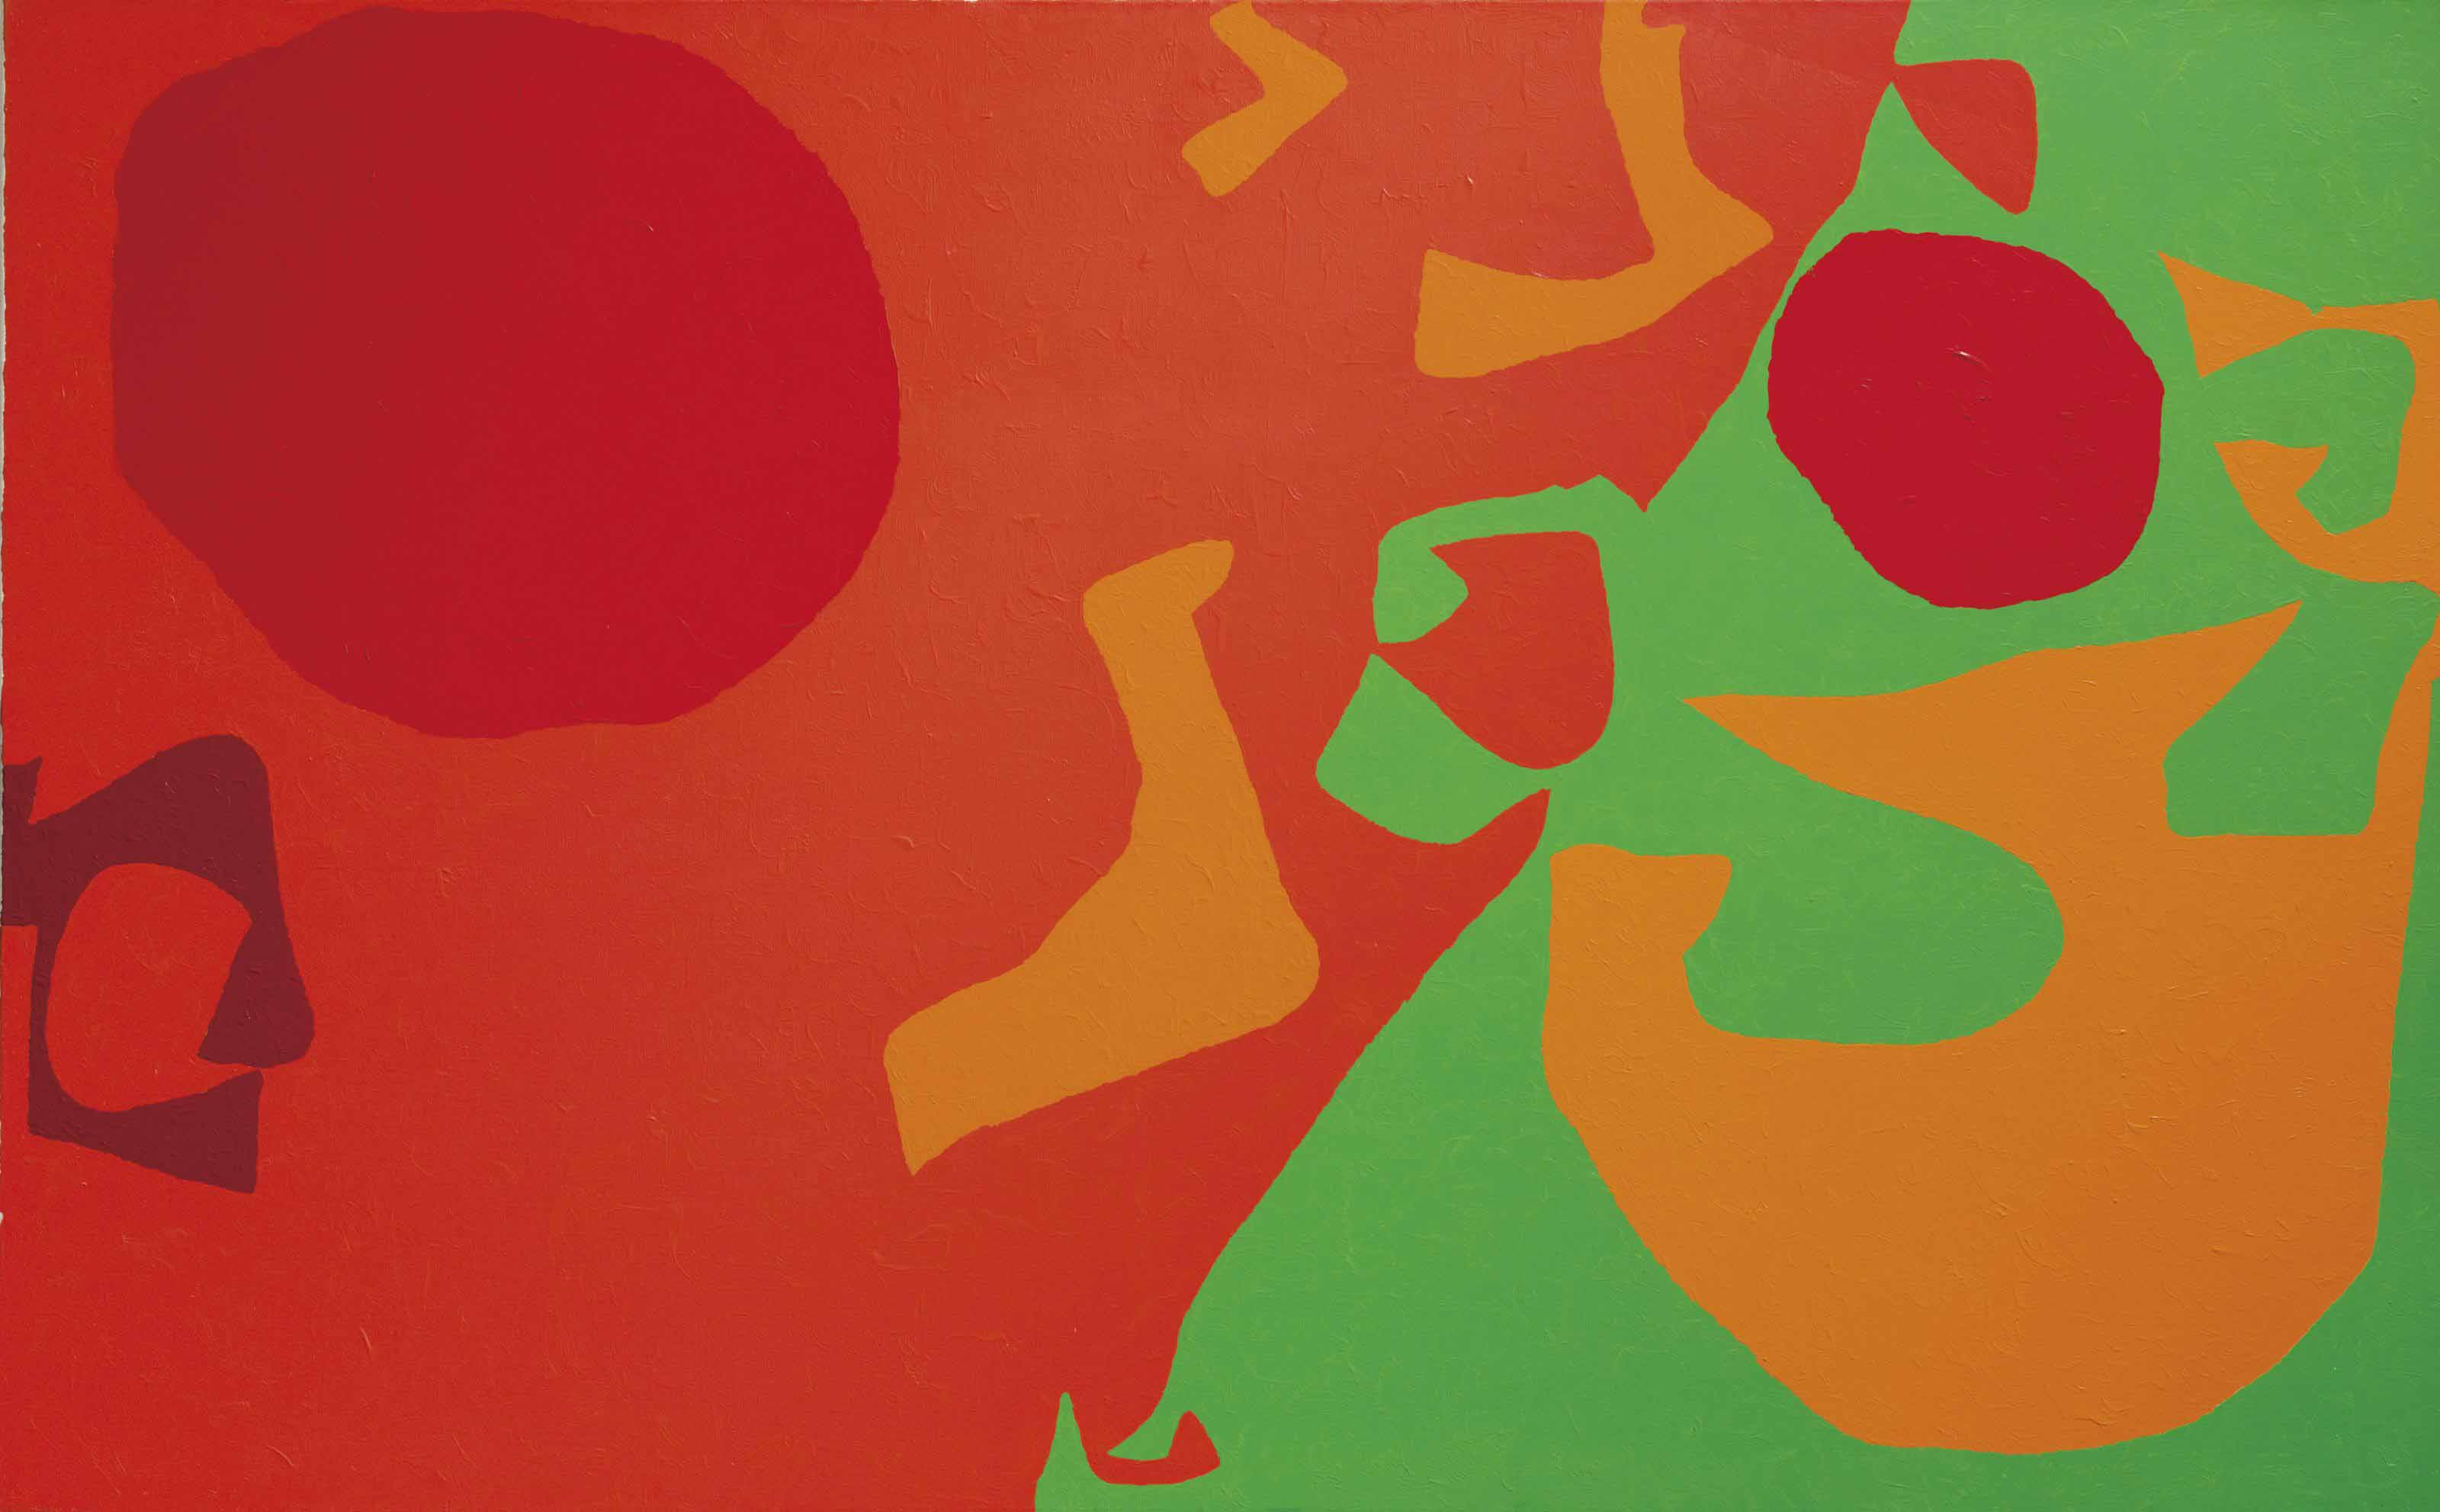 Small Diagonal with Scarlet, Emerald and Orange Fragments: 1971- January 1975